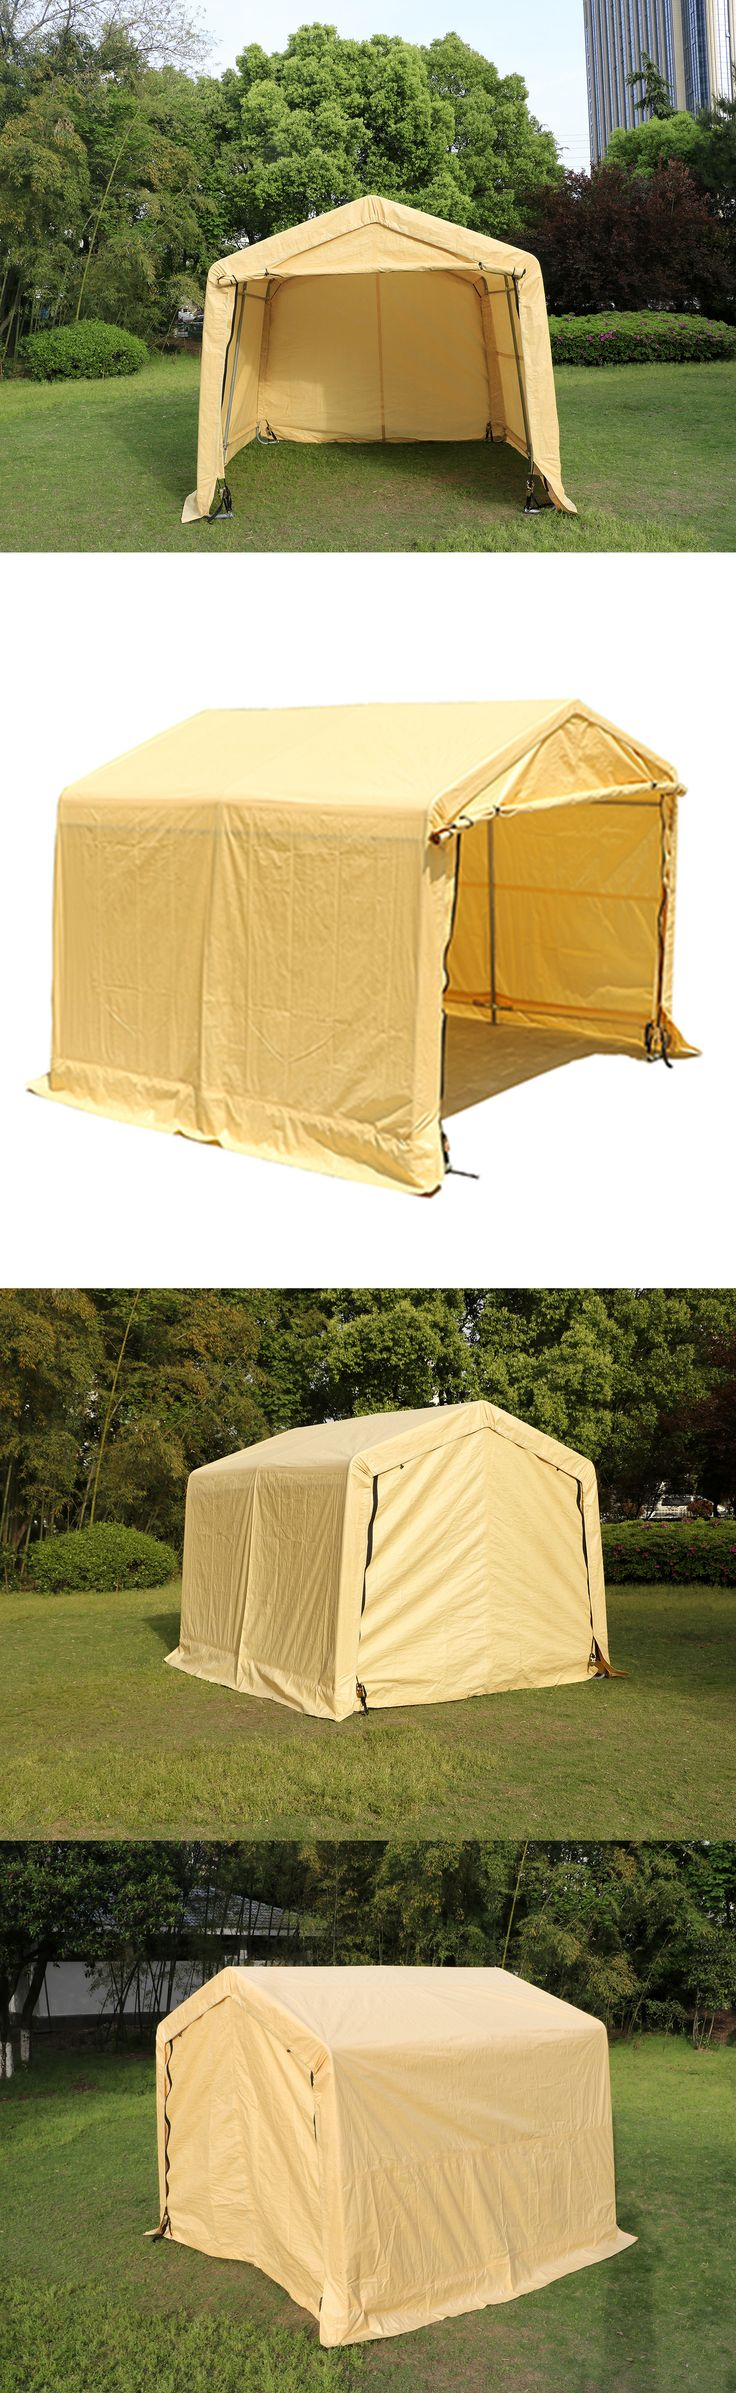 Garden and Storage Sheds 139956: 10X10x8ft Auto Shelter Logic Carport Storage Car Shelter Canopy Tent Party Beige -> BUY IT NOW ONLY: $186.99 on eBay!